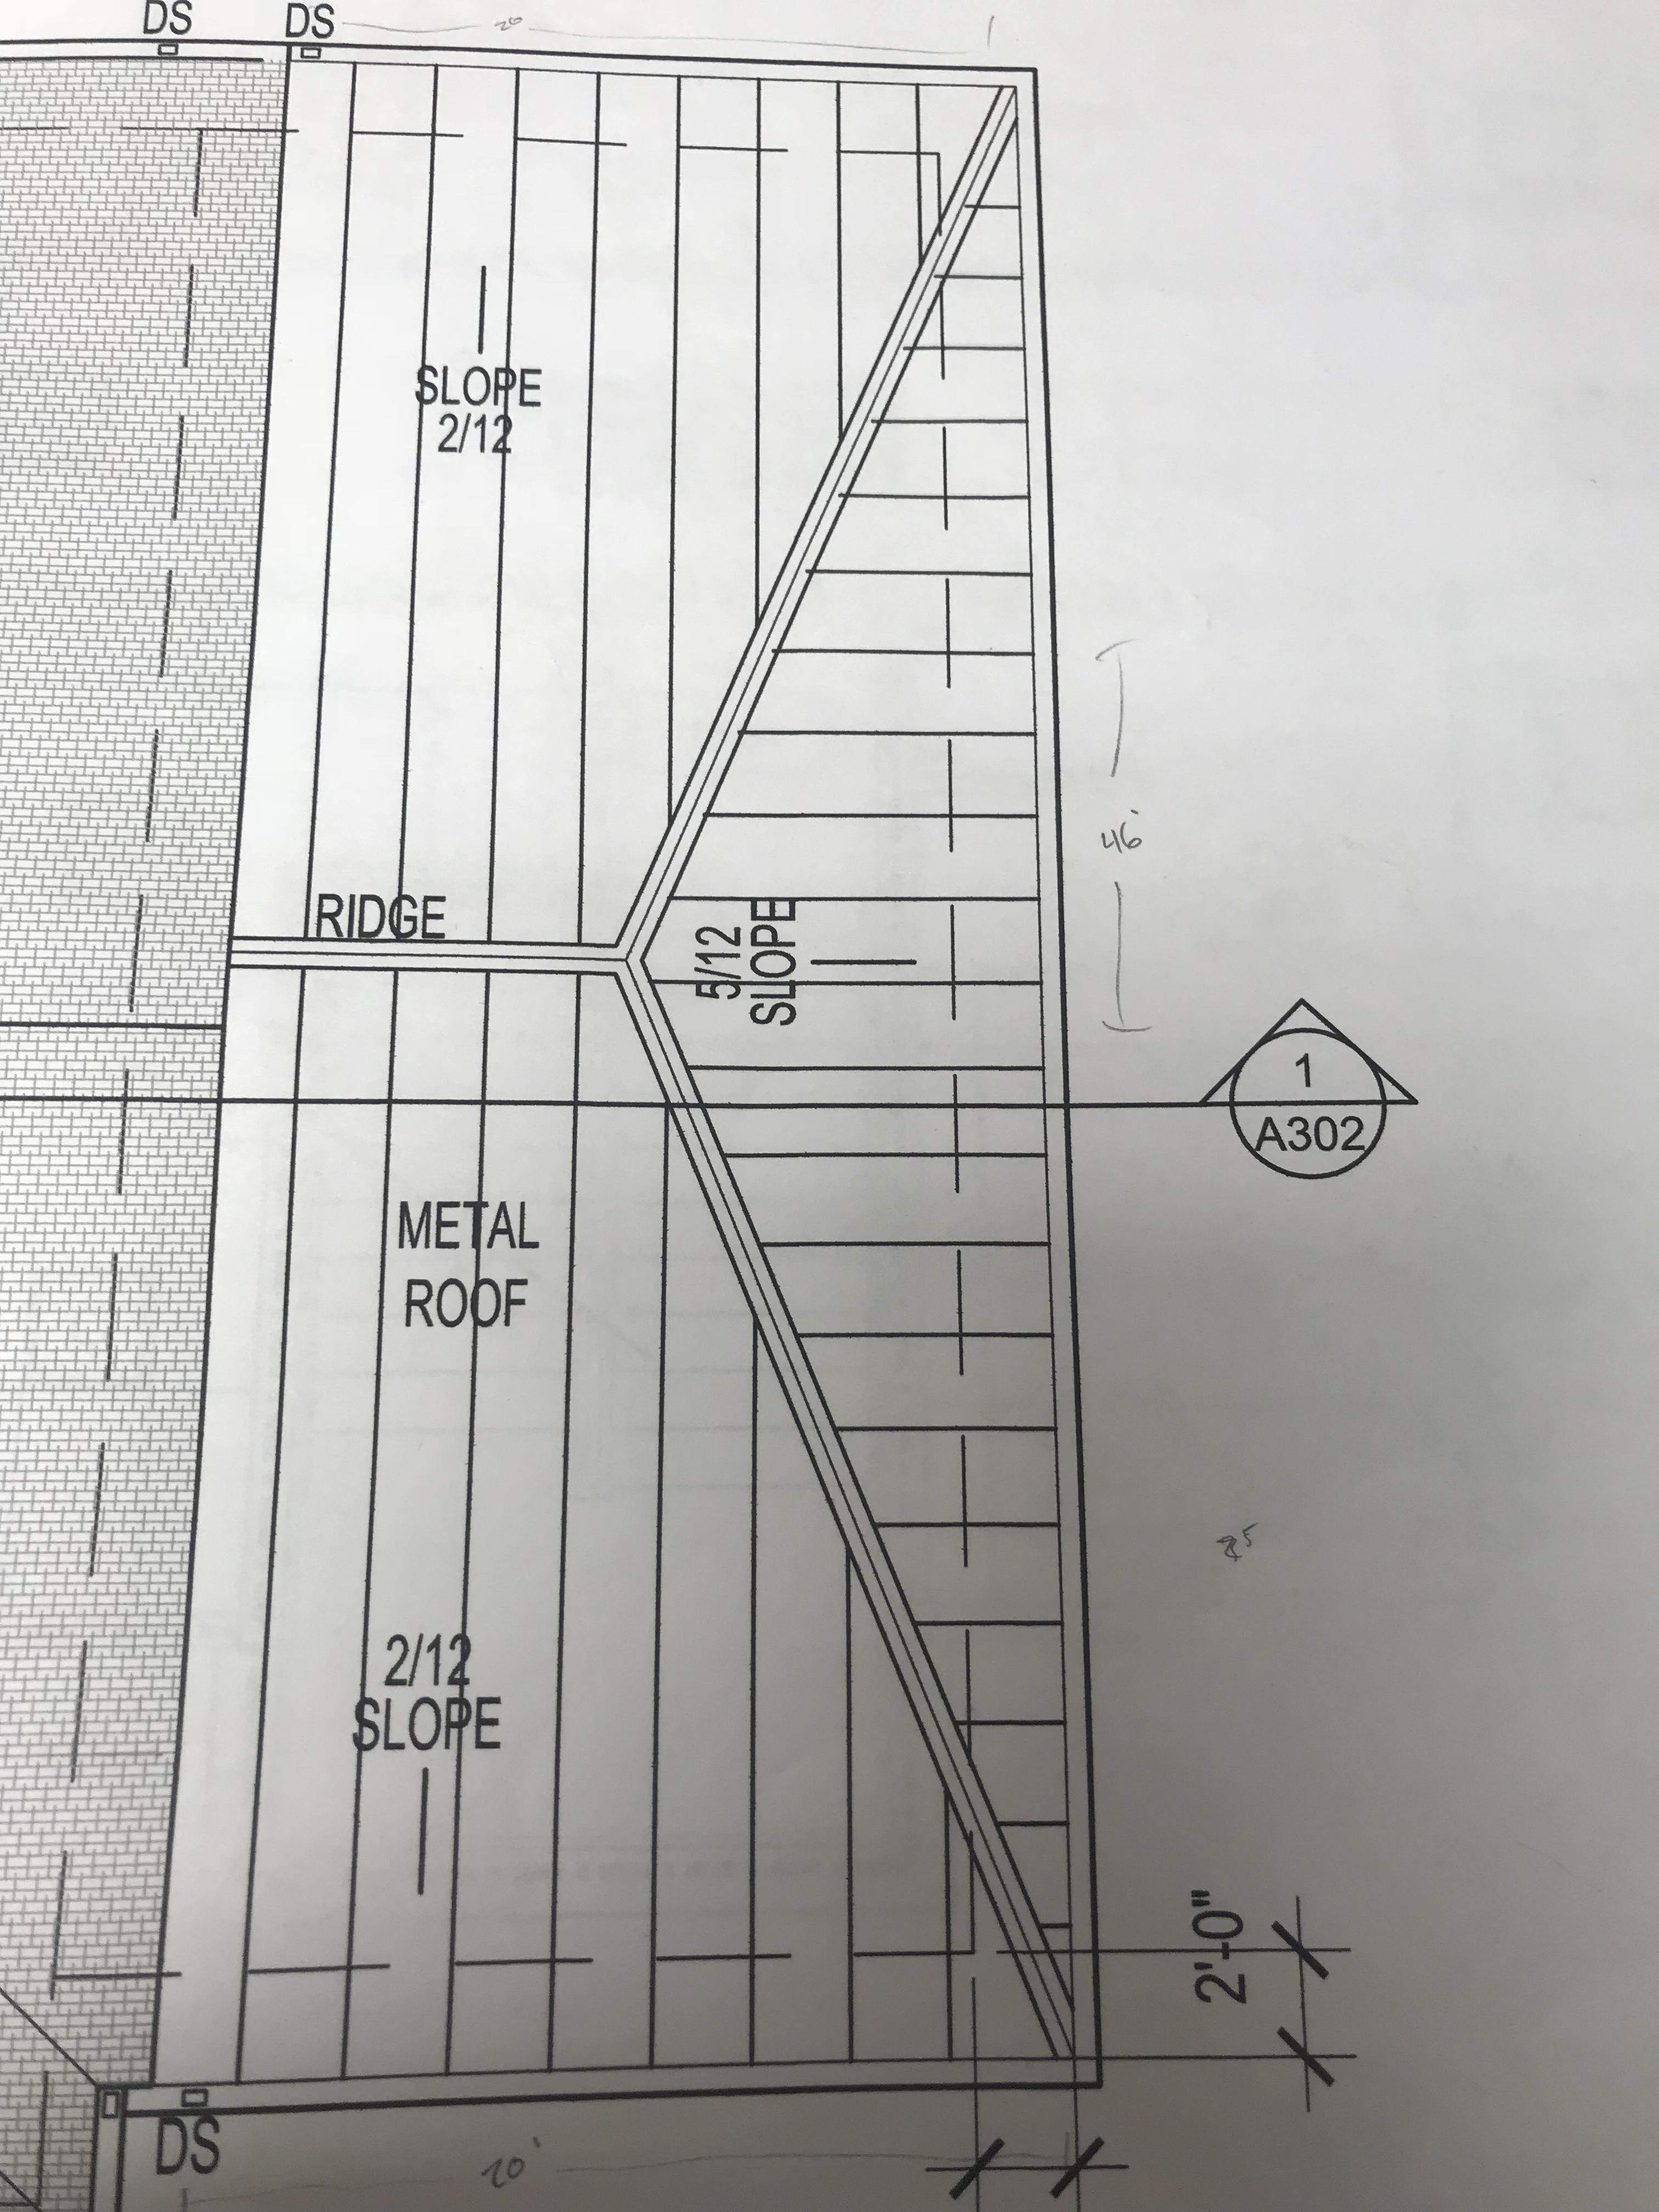 How to measure a hip roof from blueprints-38676c5b-6ab8-47c1-bb09-0ff13f37da24_1517595398125.jpeg